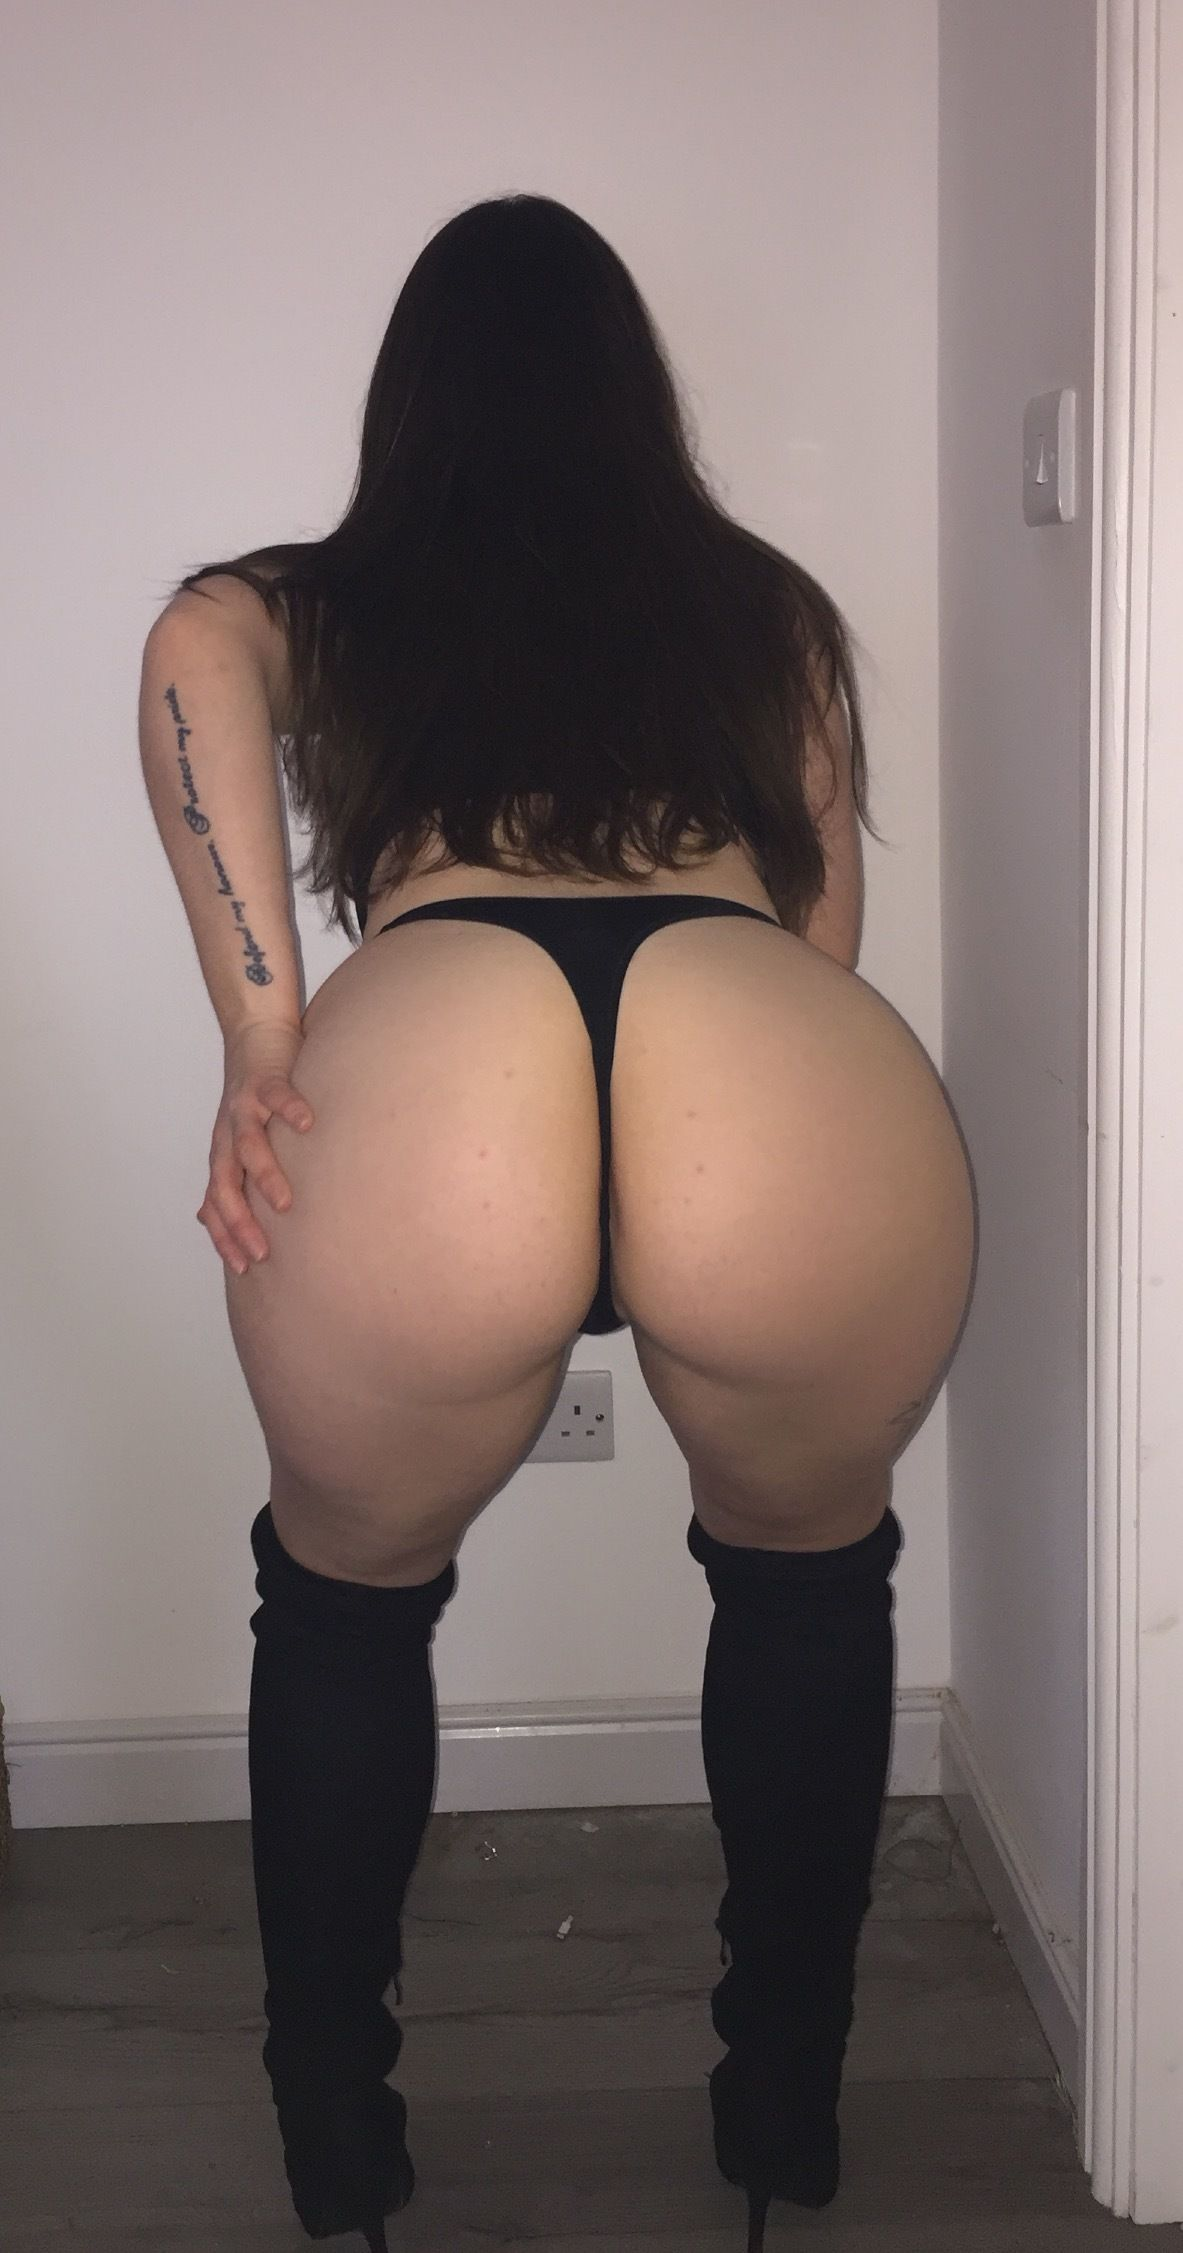 Letsbluntandbong photos and videos onlyfans leaked